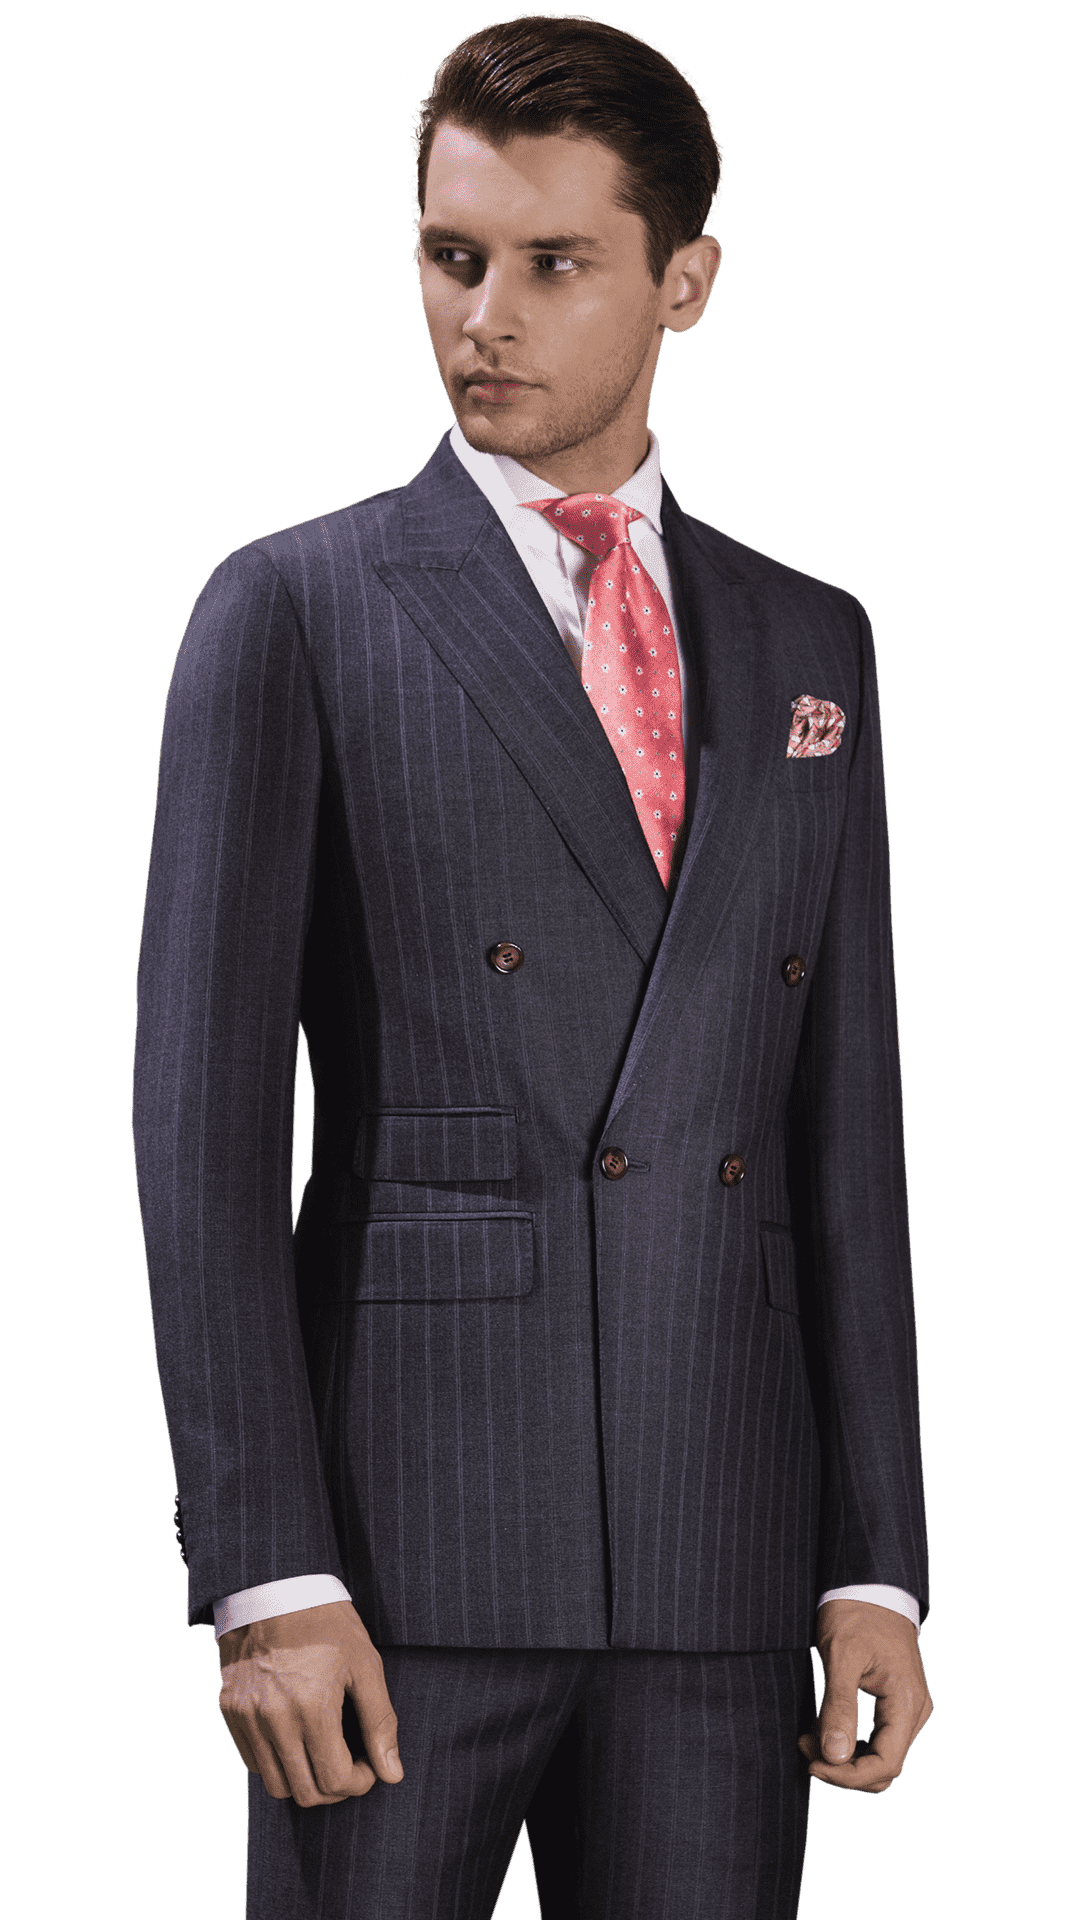 tailor made bespoke suit business